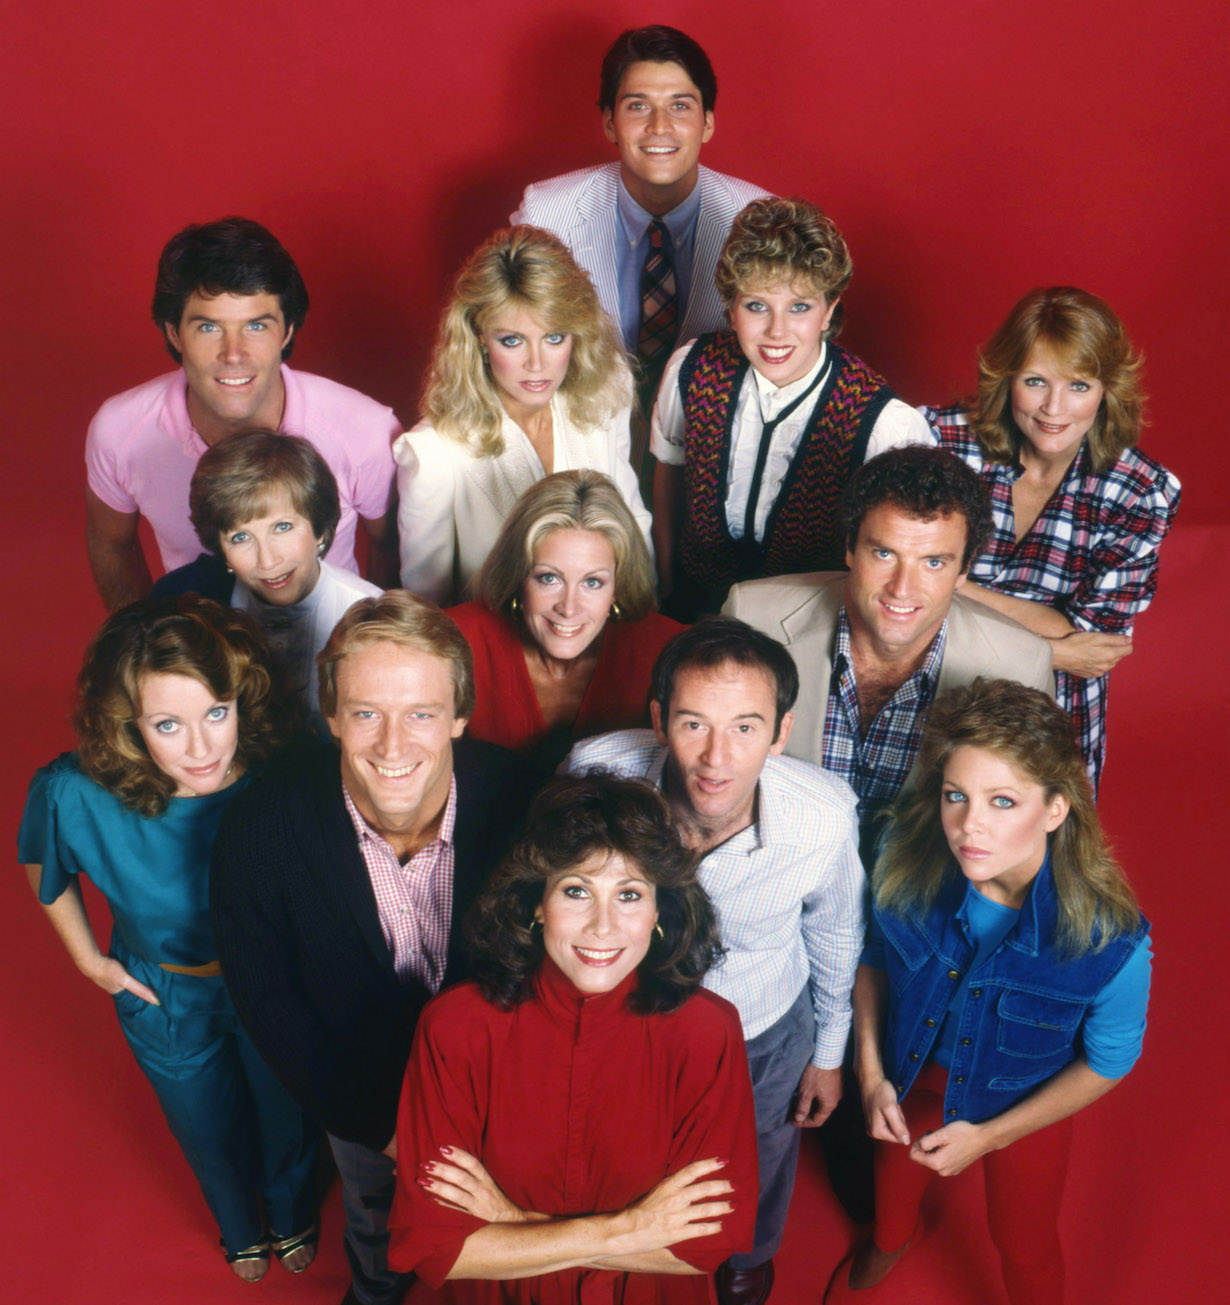 KNOTS LANDING, 2nd row 2nd from left: Donna Mills, far right: Constance McCashin, 3rd row l-r: Kim Lankford, Julie Harris, Joan Van Ark, Kevin Dobson, bottom l-r: Ted Shackelford, Michele Lee, John Pleshette, 1979-93.